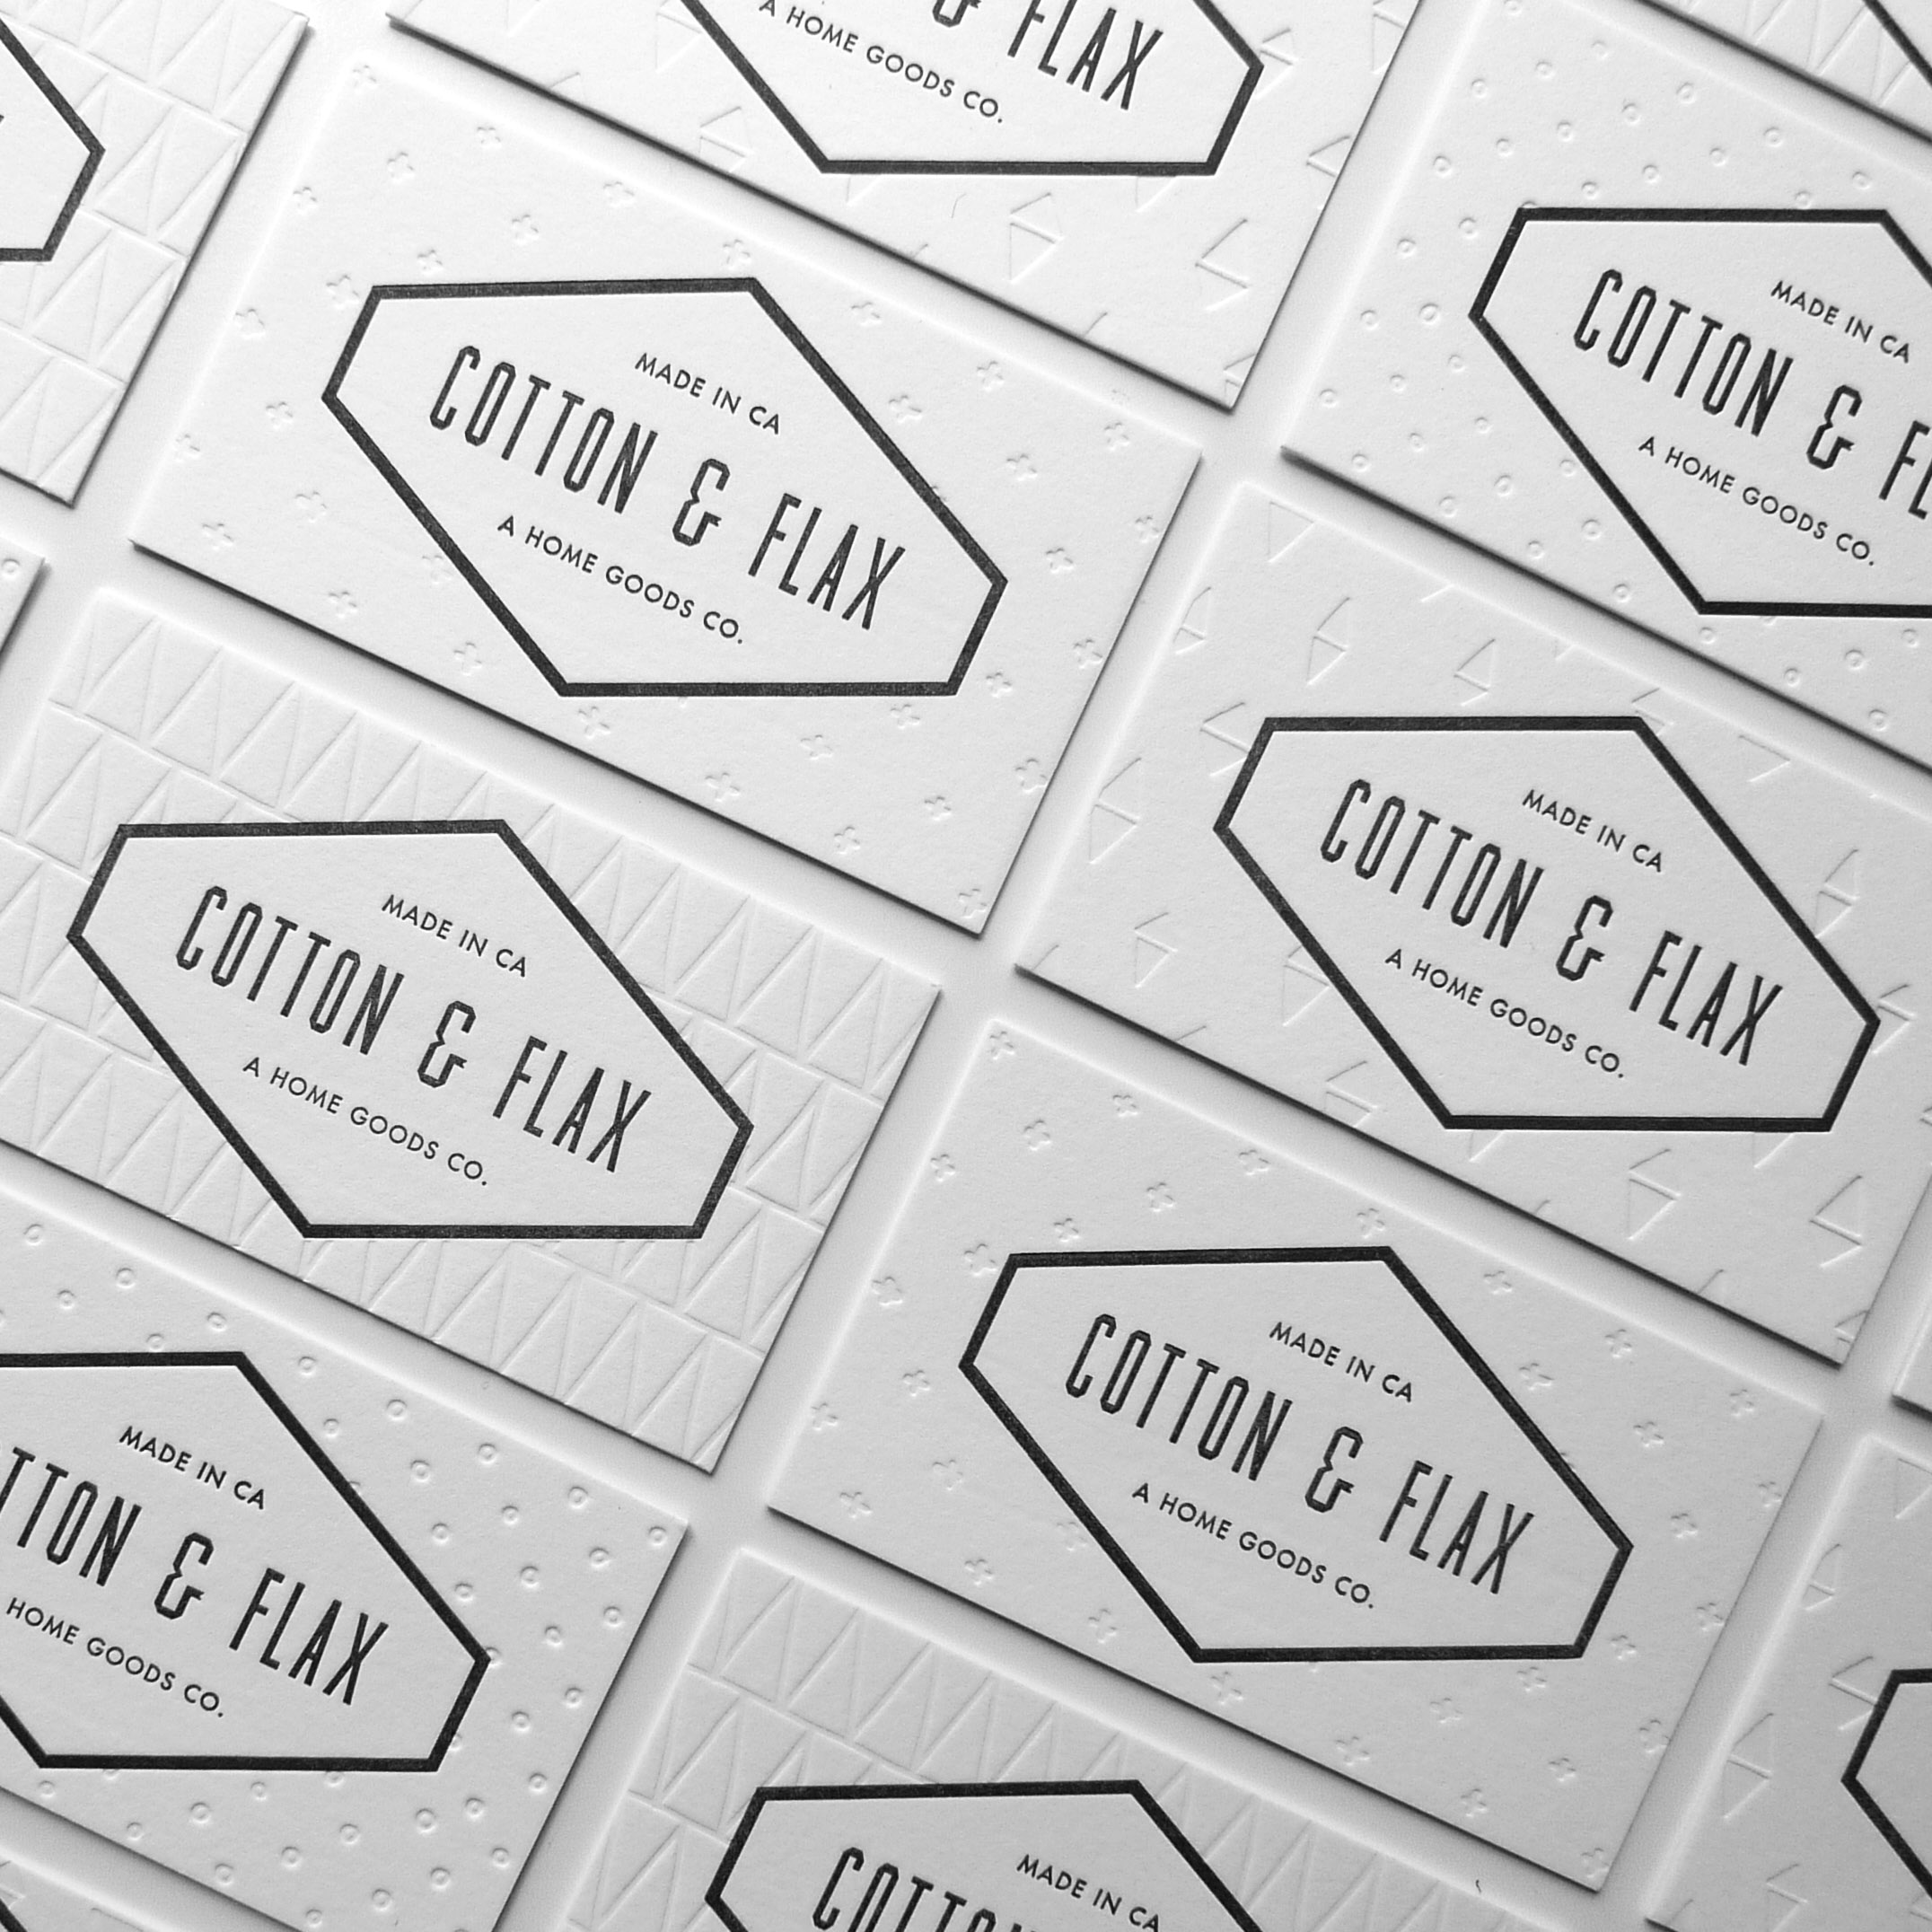 Cotton & Flax business cards – Blog - Cotton & Flax